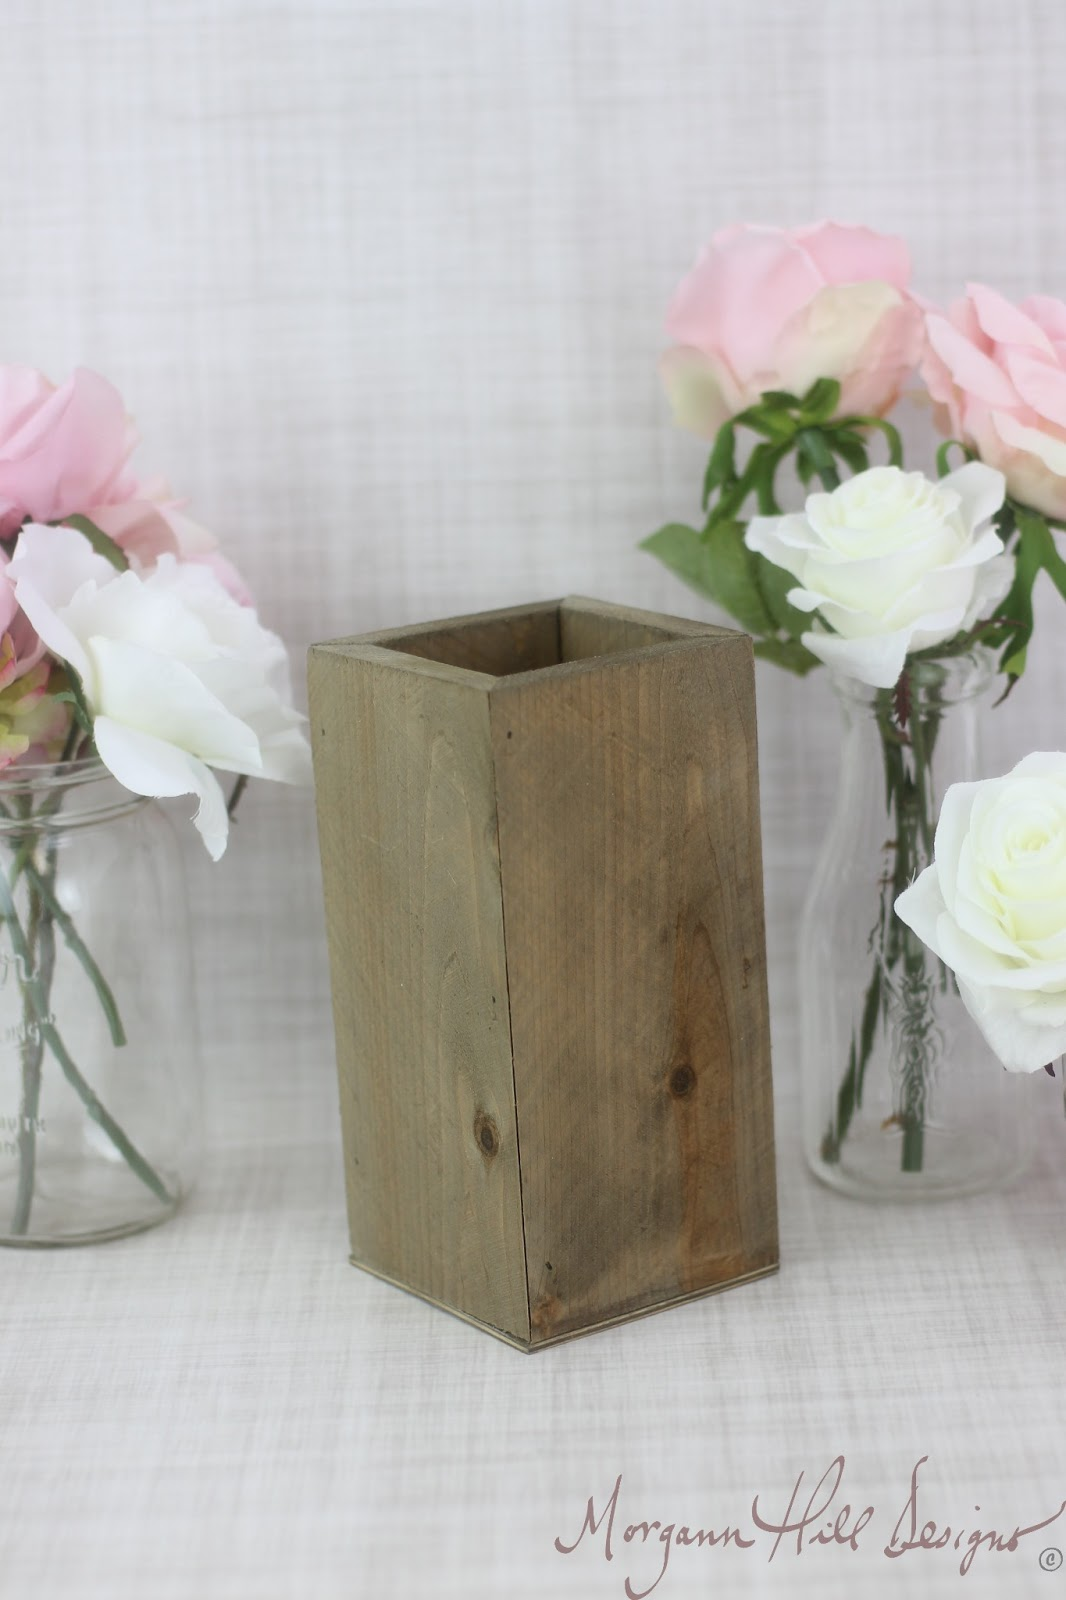 Morgann hill designs tall rustic planter box wedding centerpiece tall rustic planter box wedding centerpiece vase shabby chic barn decor country item number 130085 reviewsmspy